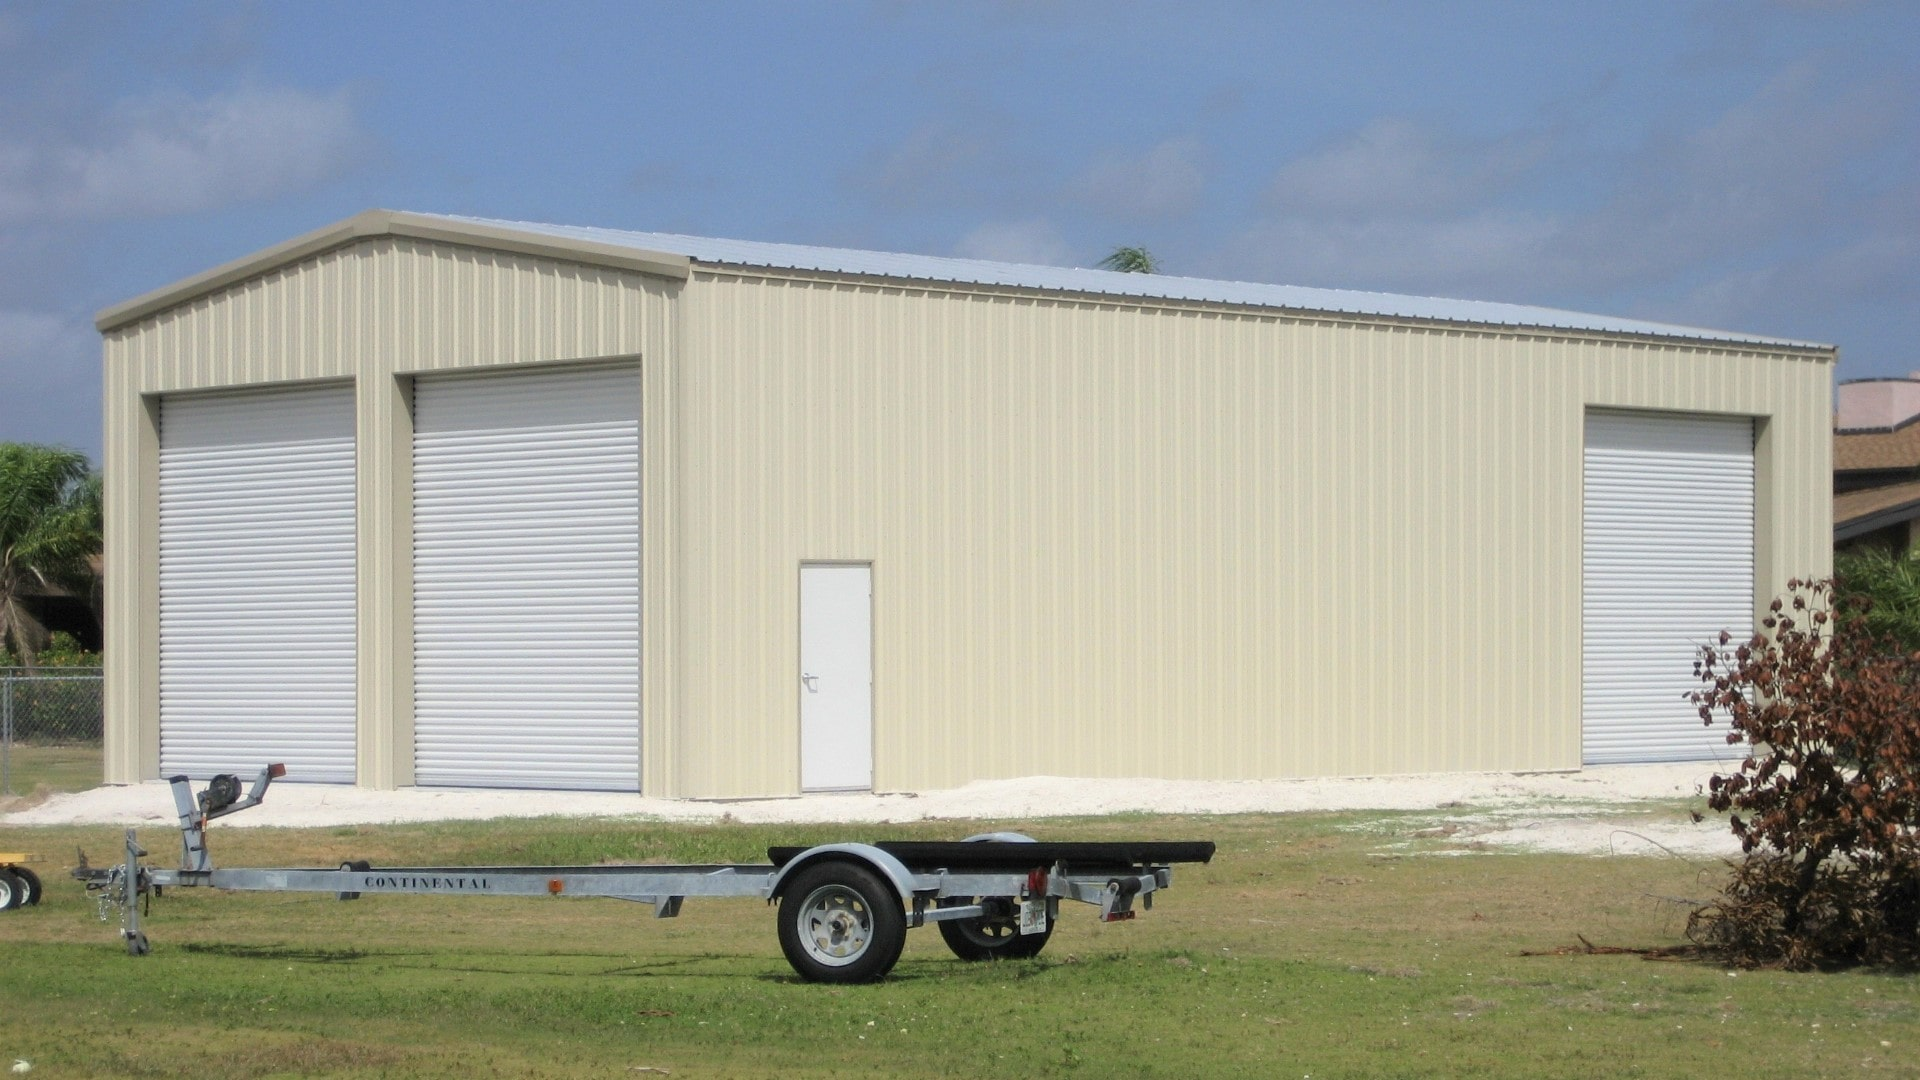 Tan RV and boat storage steel building with 2 rollup doors on gable end and 1 rollup door on front sidewall.